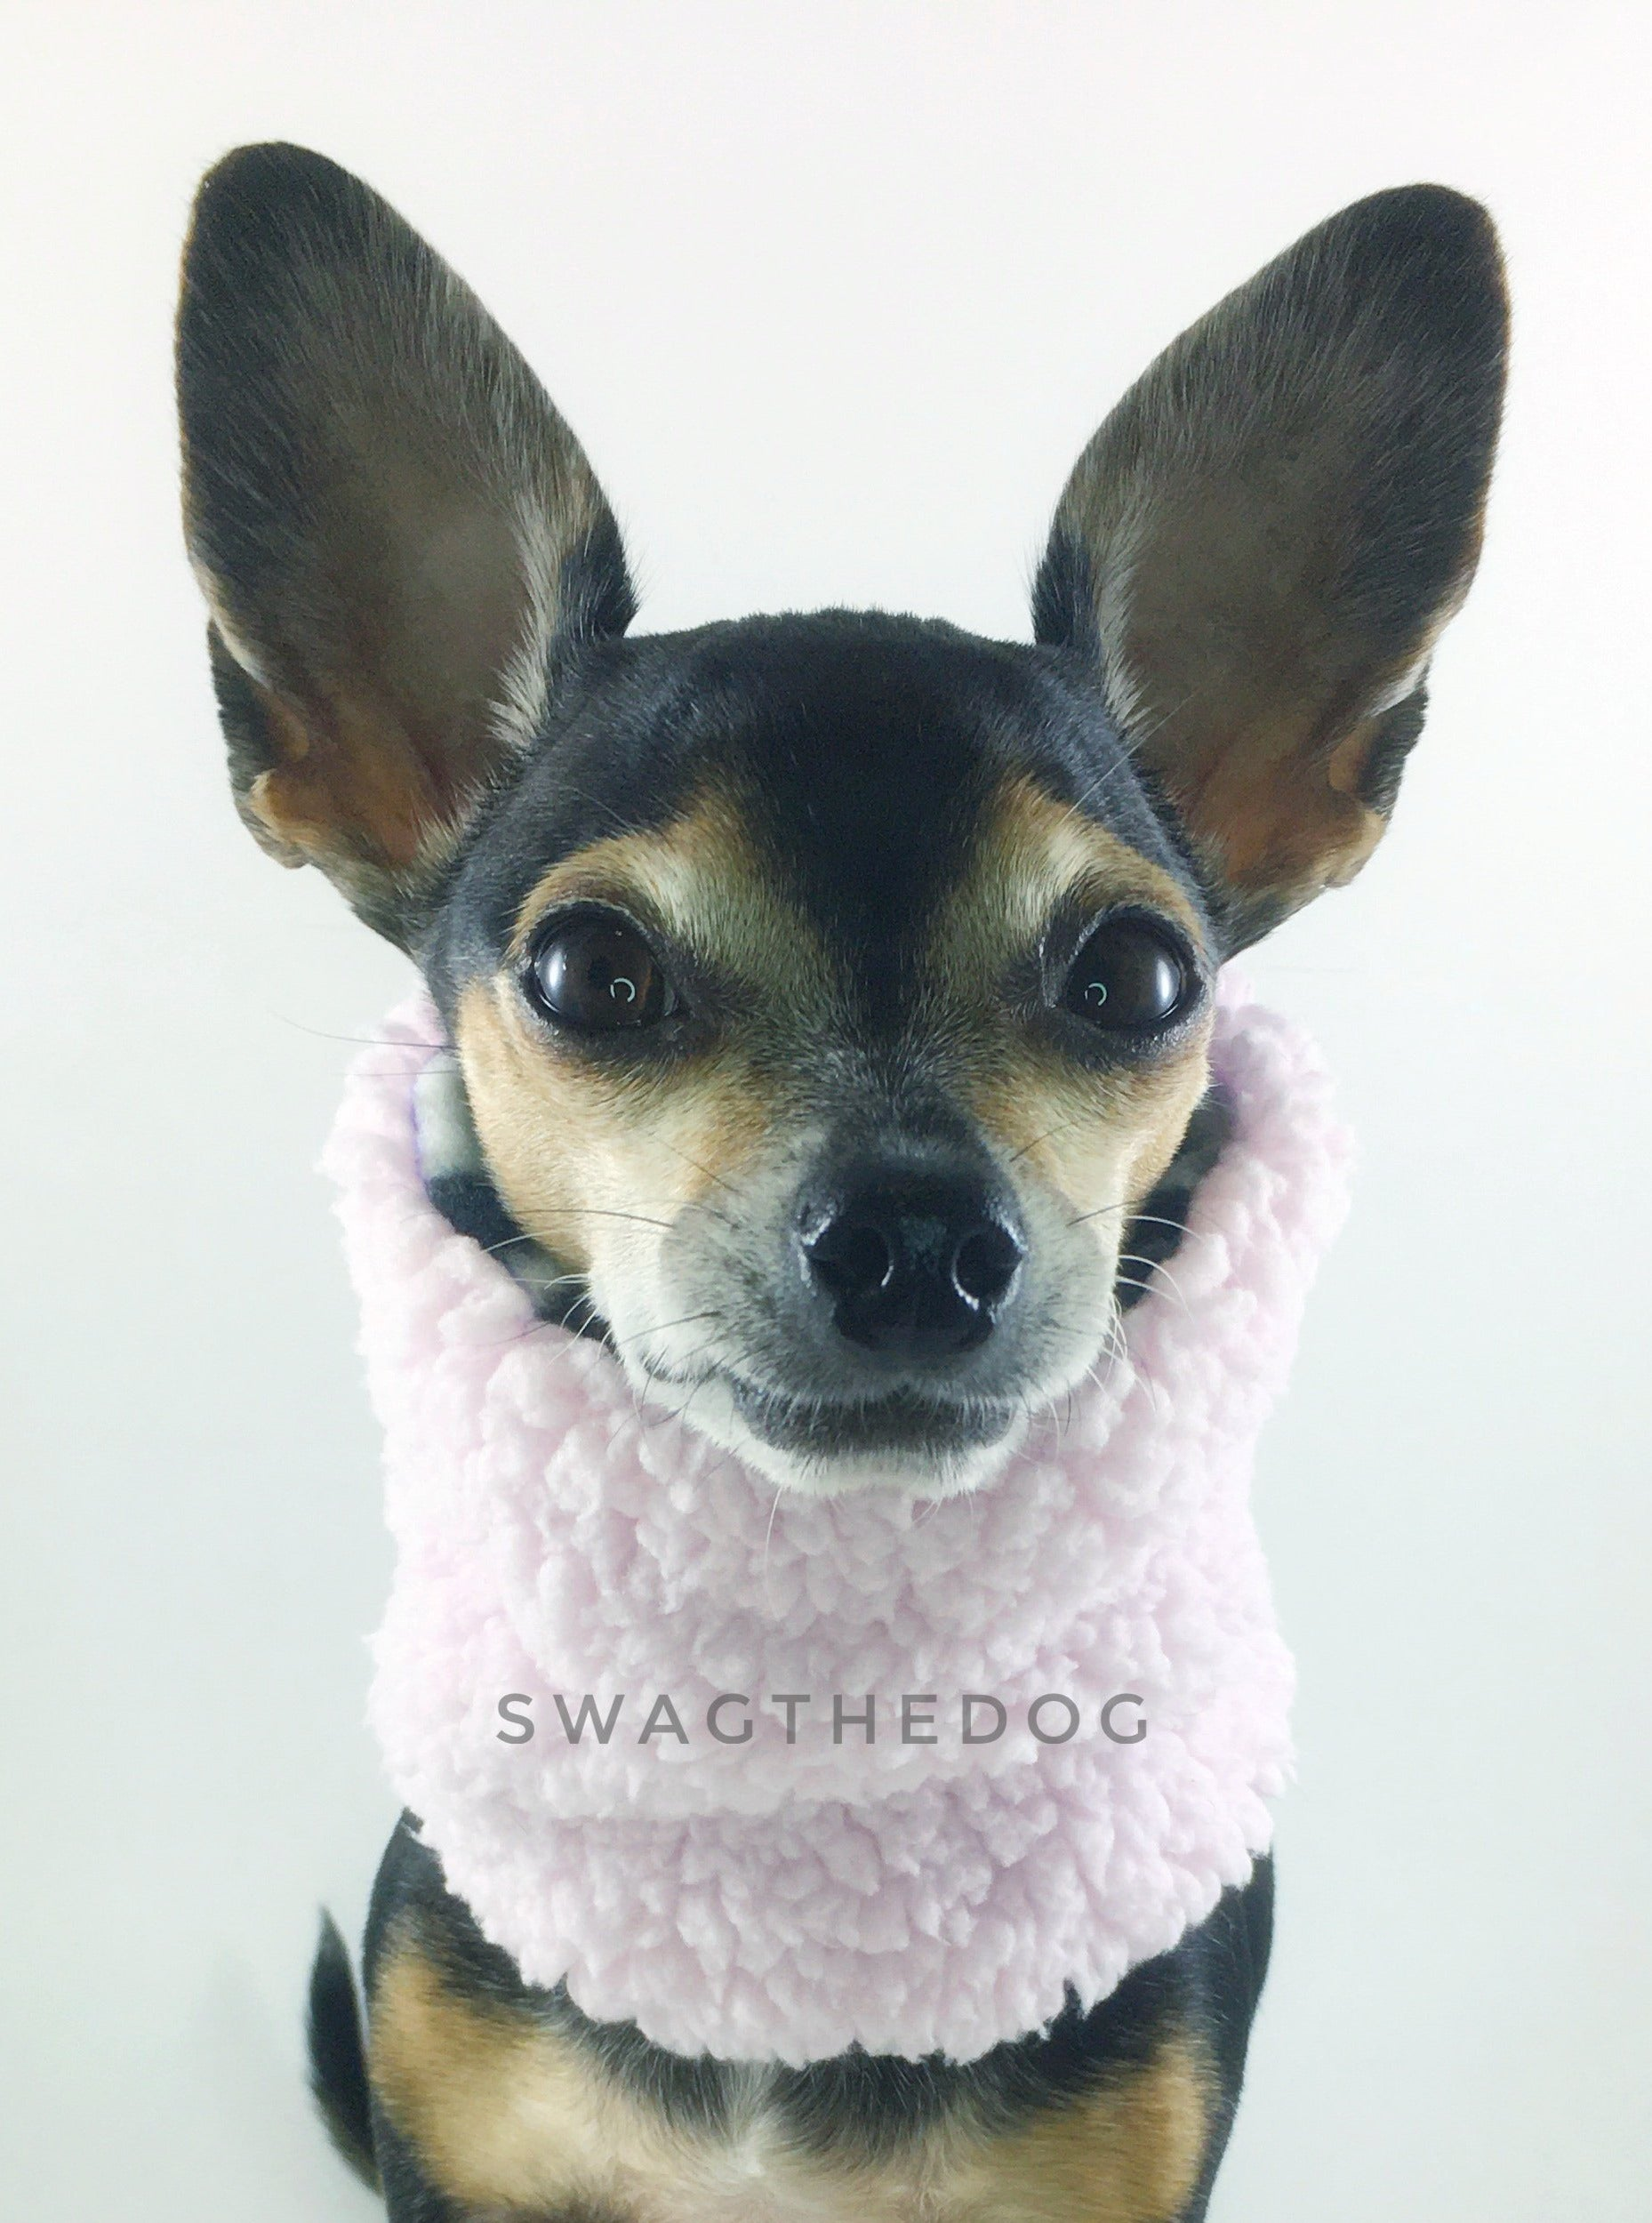 Gray Snow Leopard Swagsnood - Full Front View of Hugo, Cute Chihuahua dog sitting wearing pink sherpa side